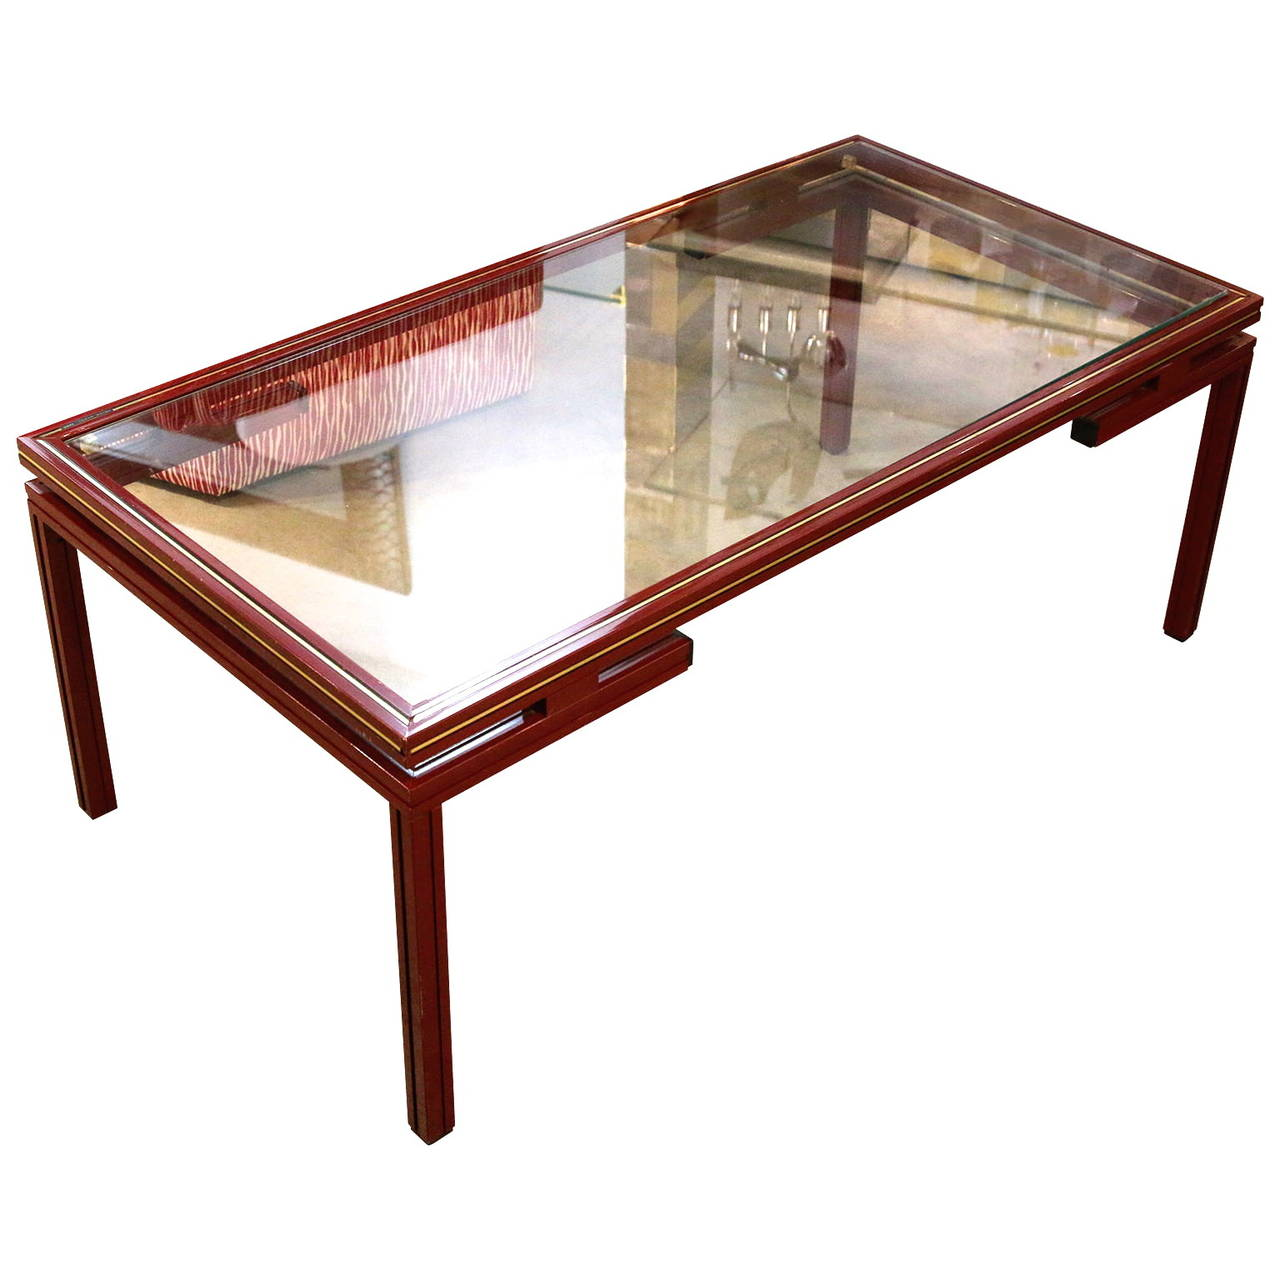 Pierre Vandel Lacquered Red With Gold Trim Coffee Table At 1stdibs